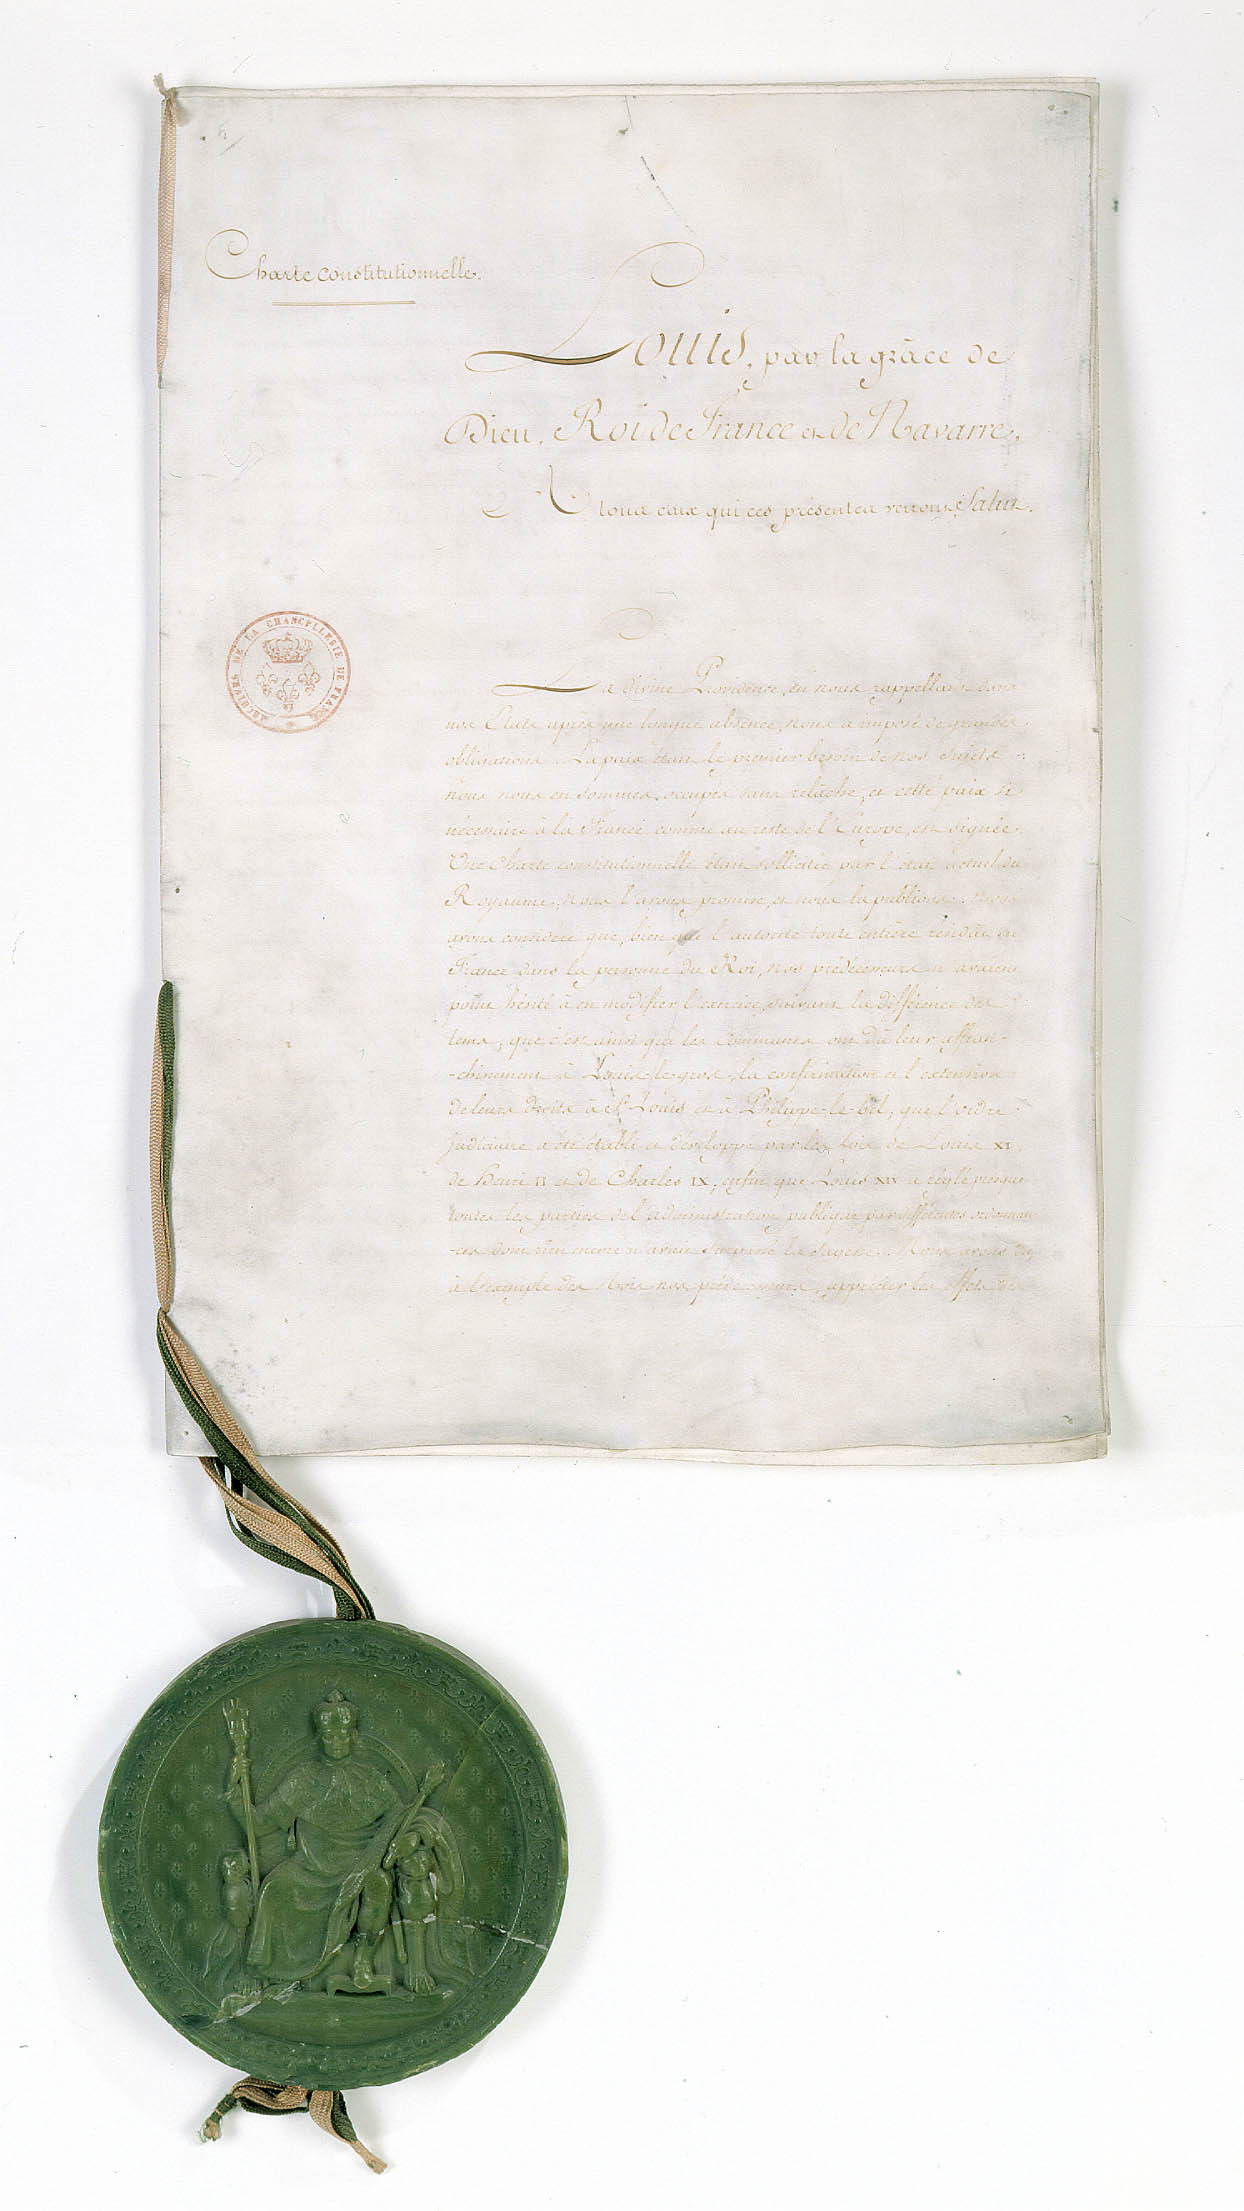 The Charter of 1814 (Kingdom of France)